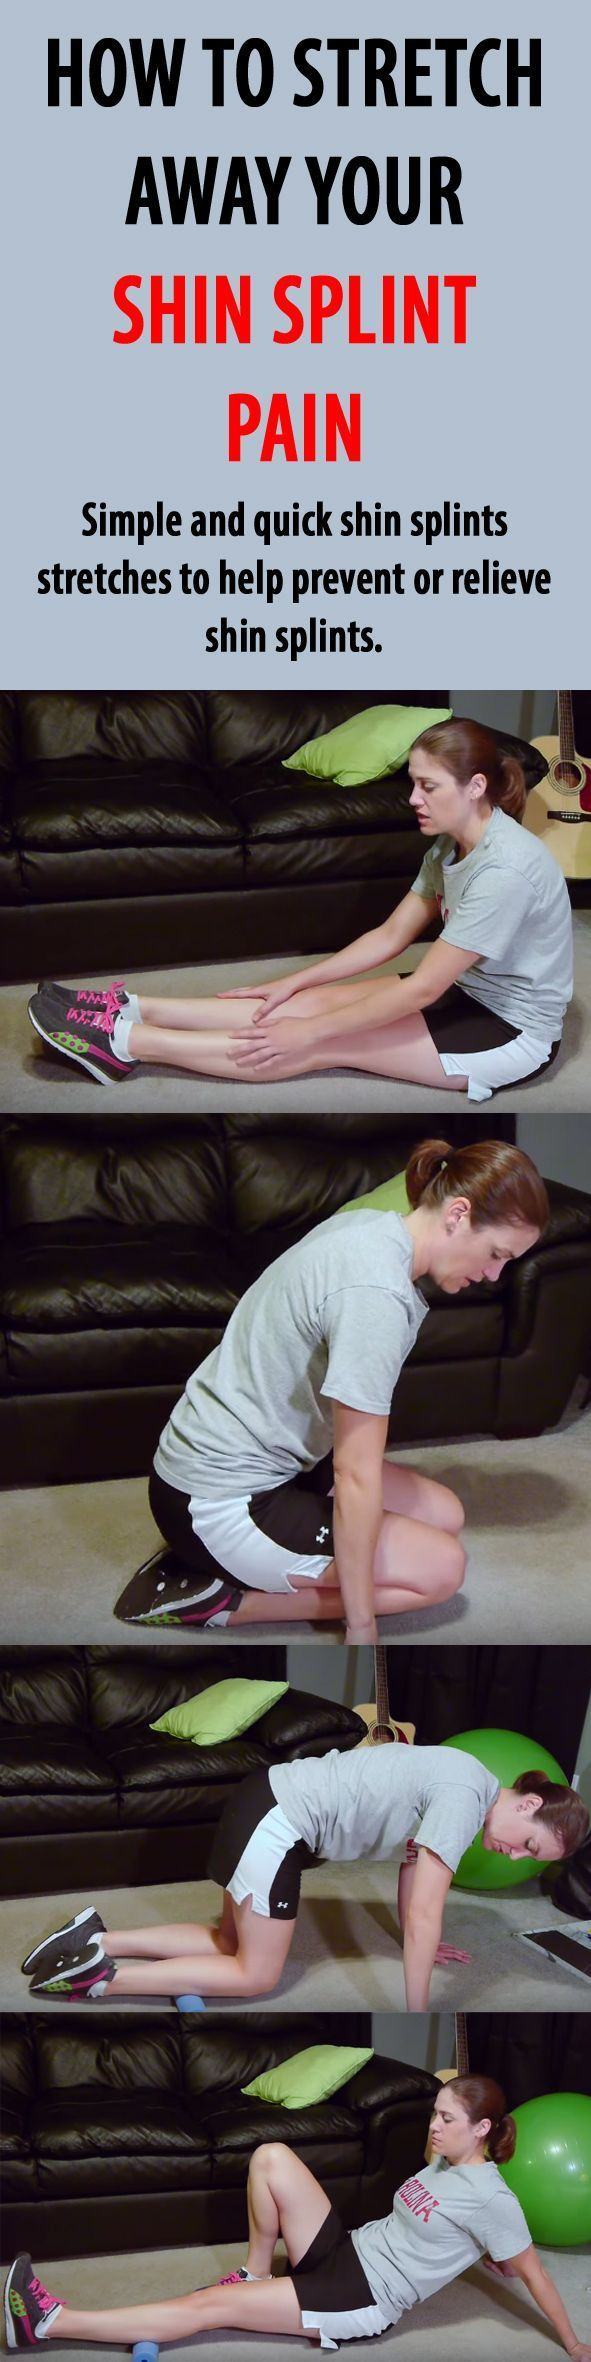 Stretch away your shin splint pain with these quick and easy moves! #shinsplints # shinsplintpain #shinsplintsstretches